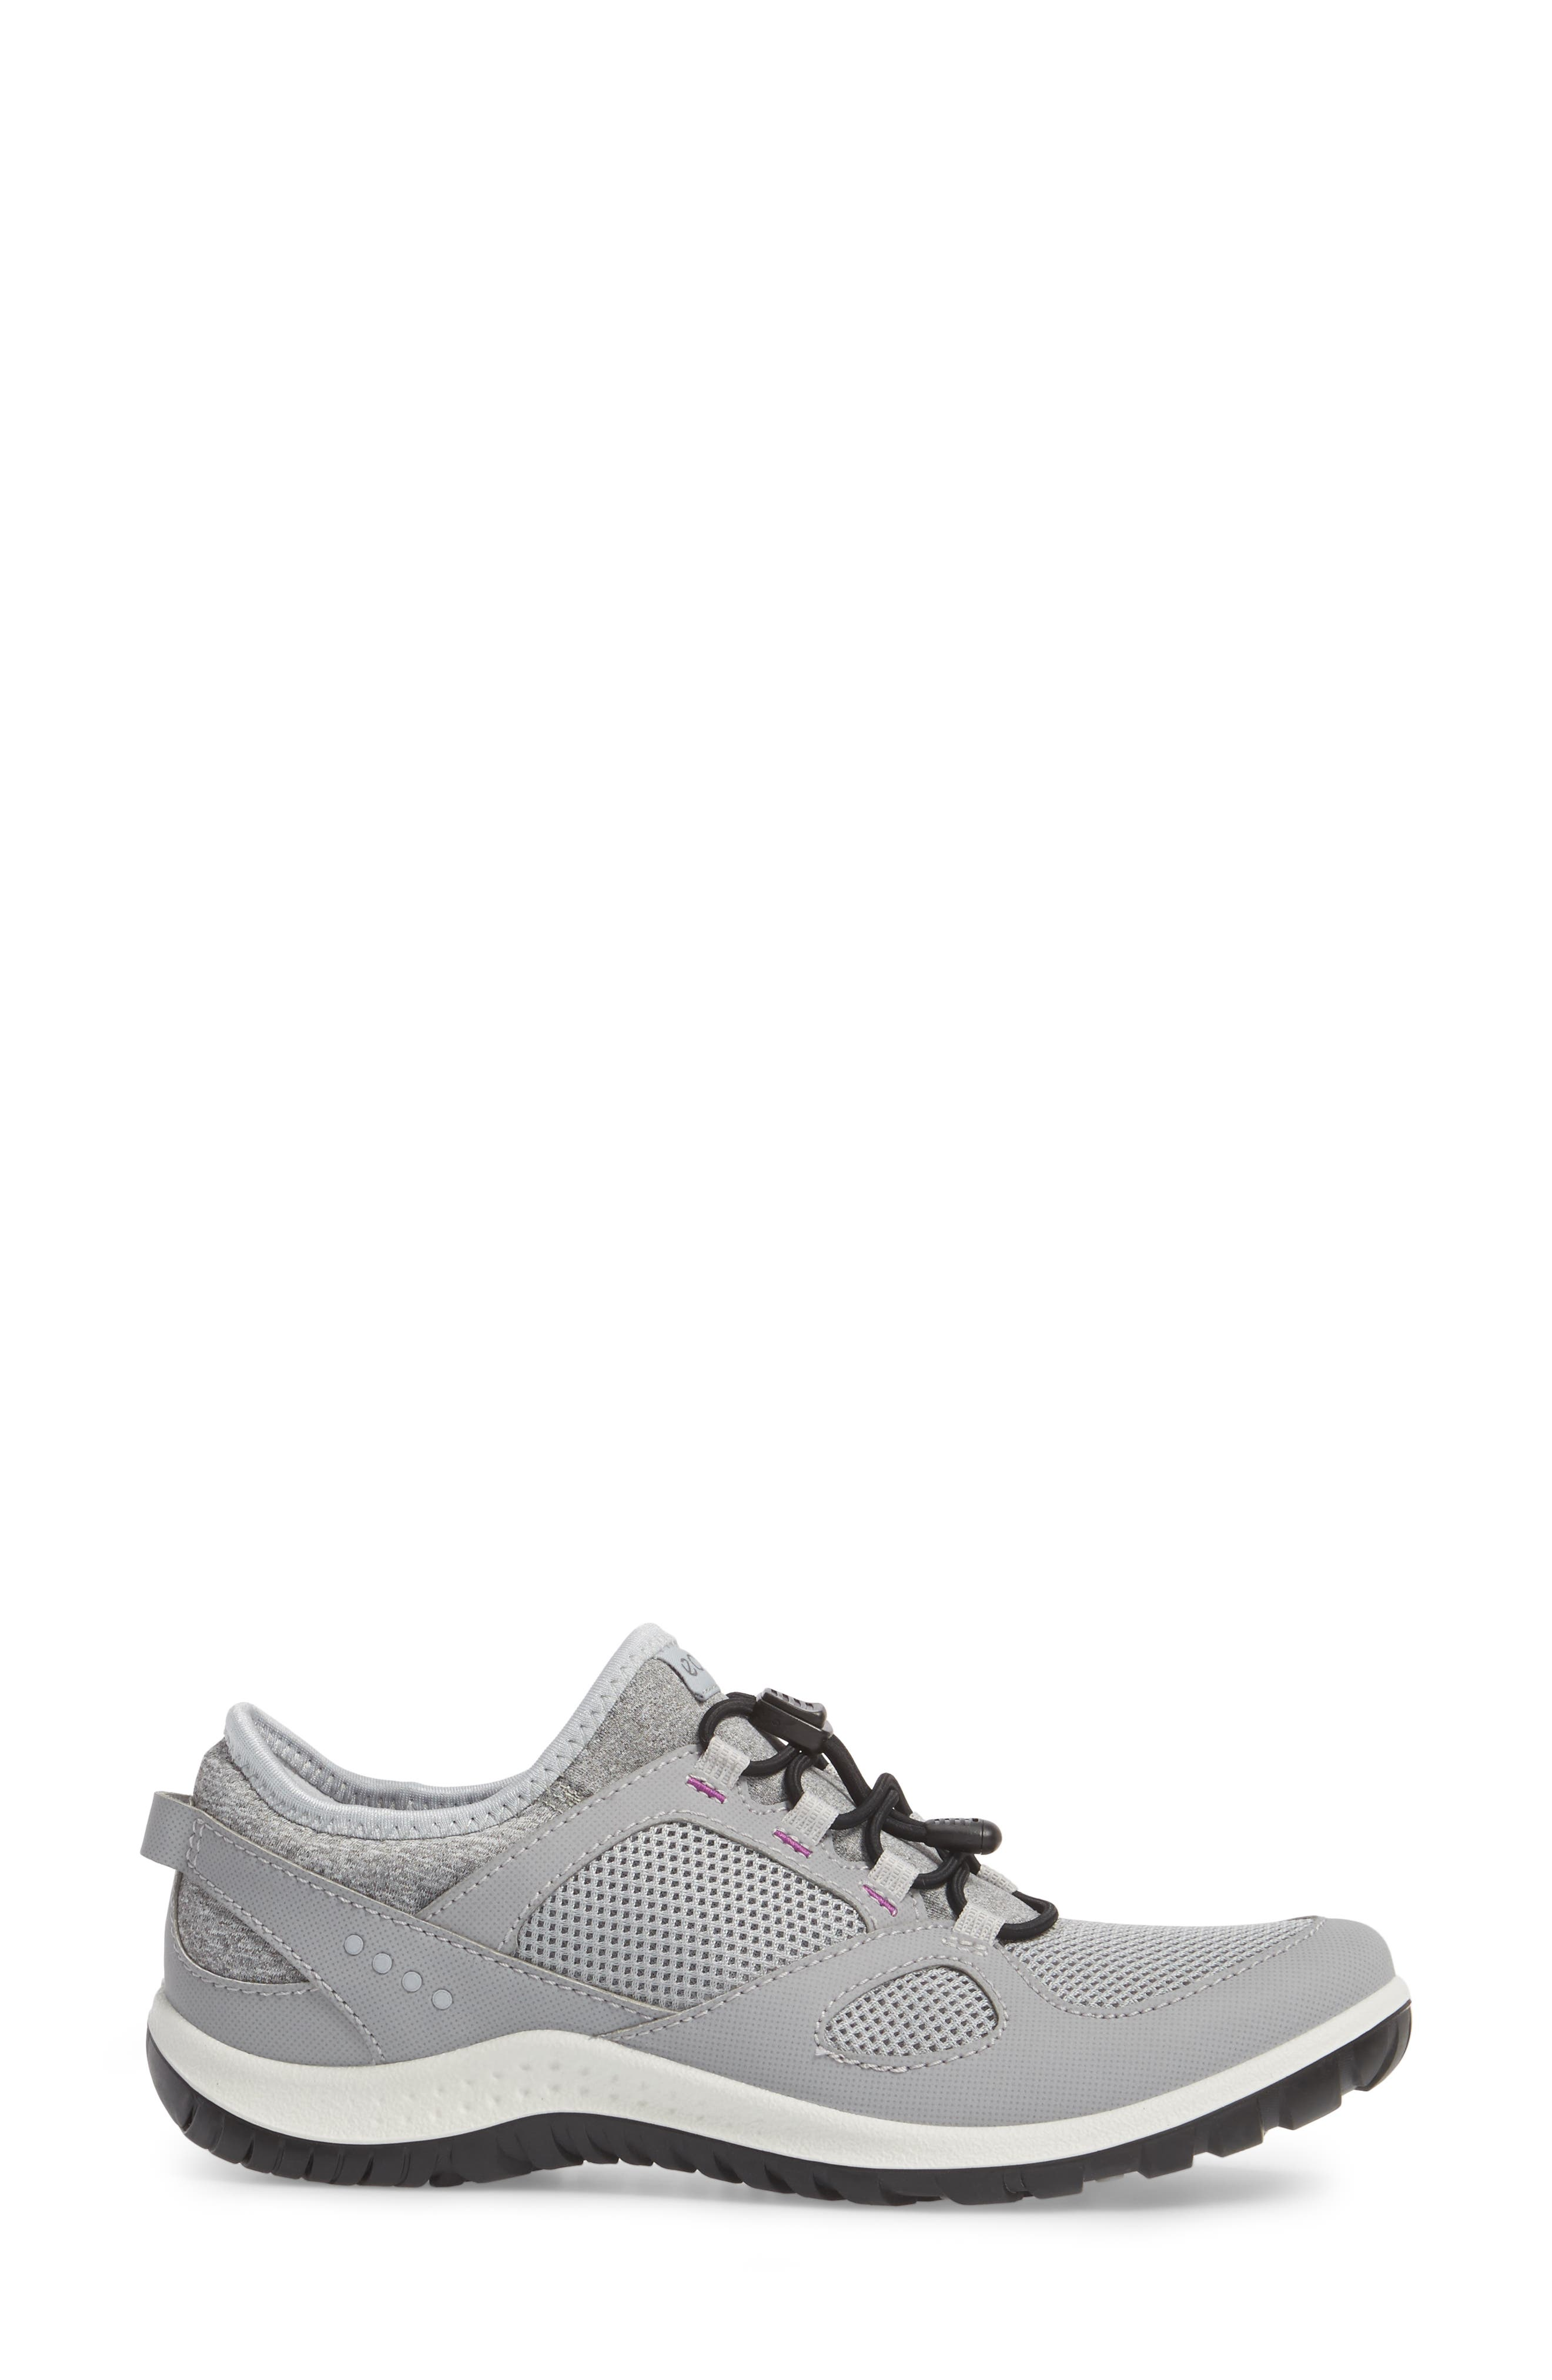 Aspina Toggle Hiking Sneaker,                             Alternate thumbnail 3, color,                             Silver Grey Leather